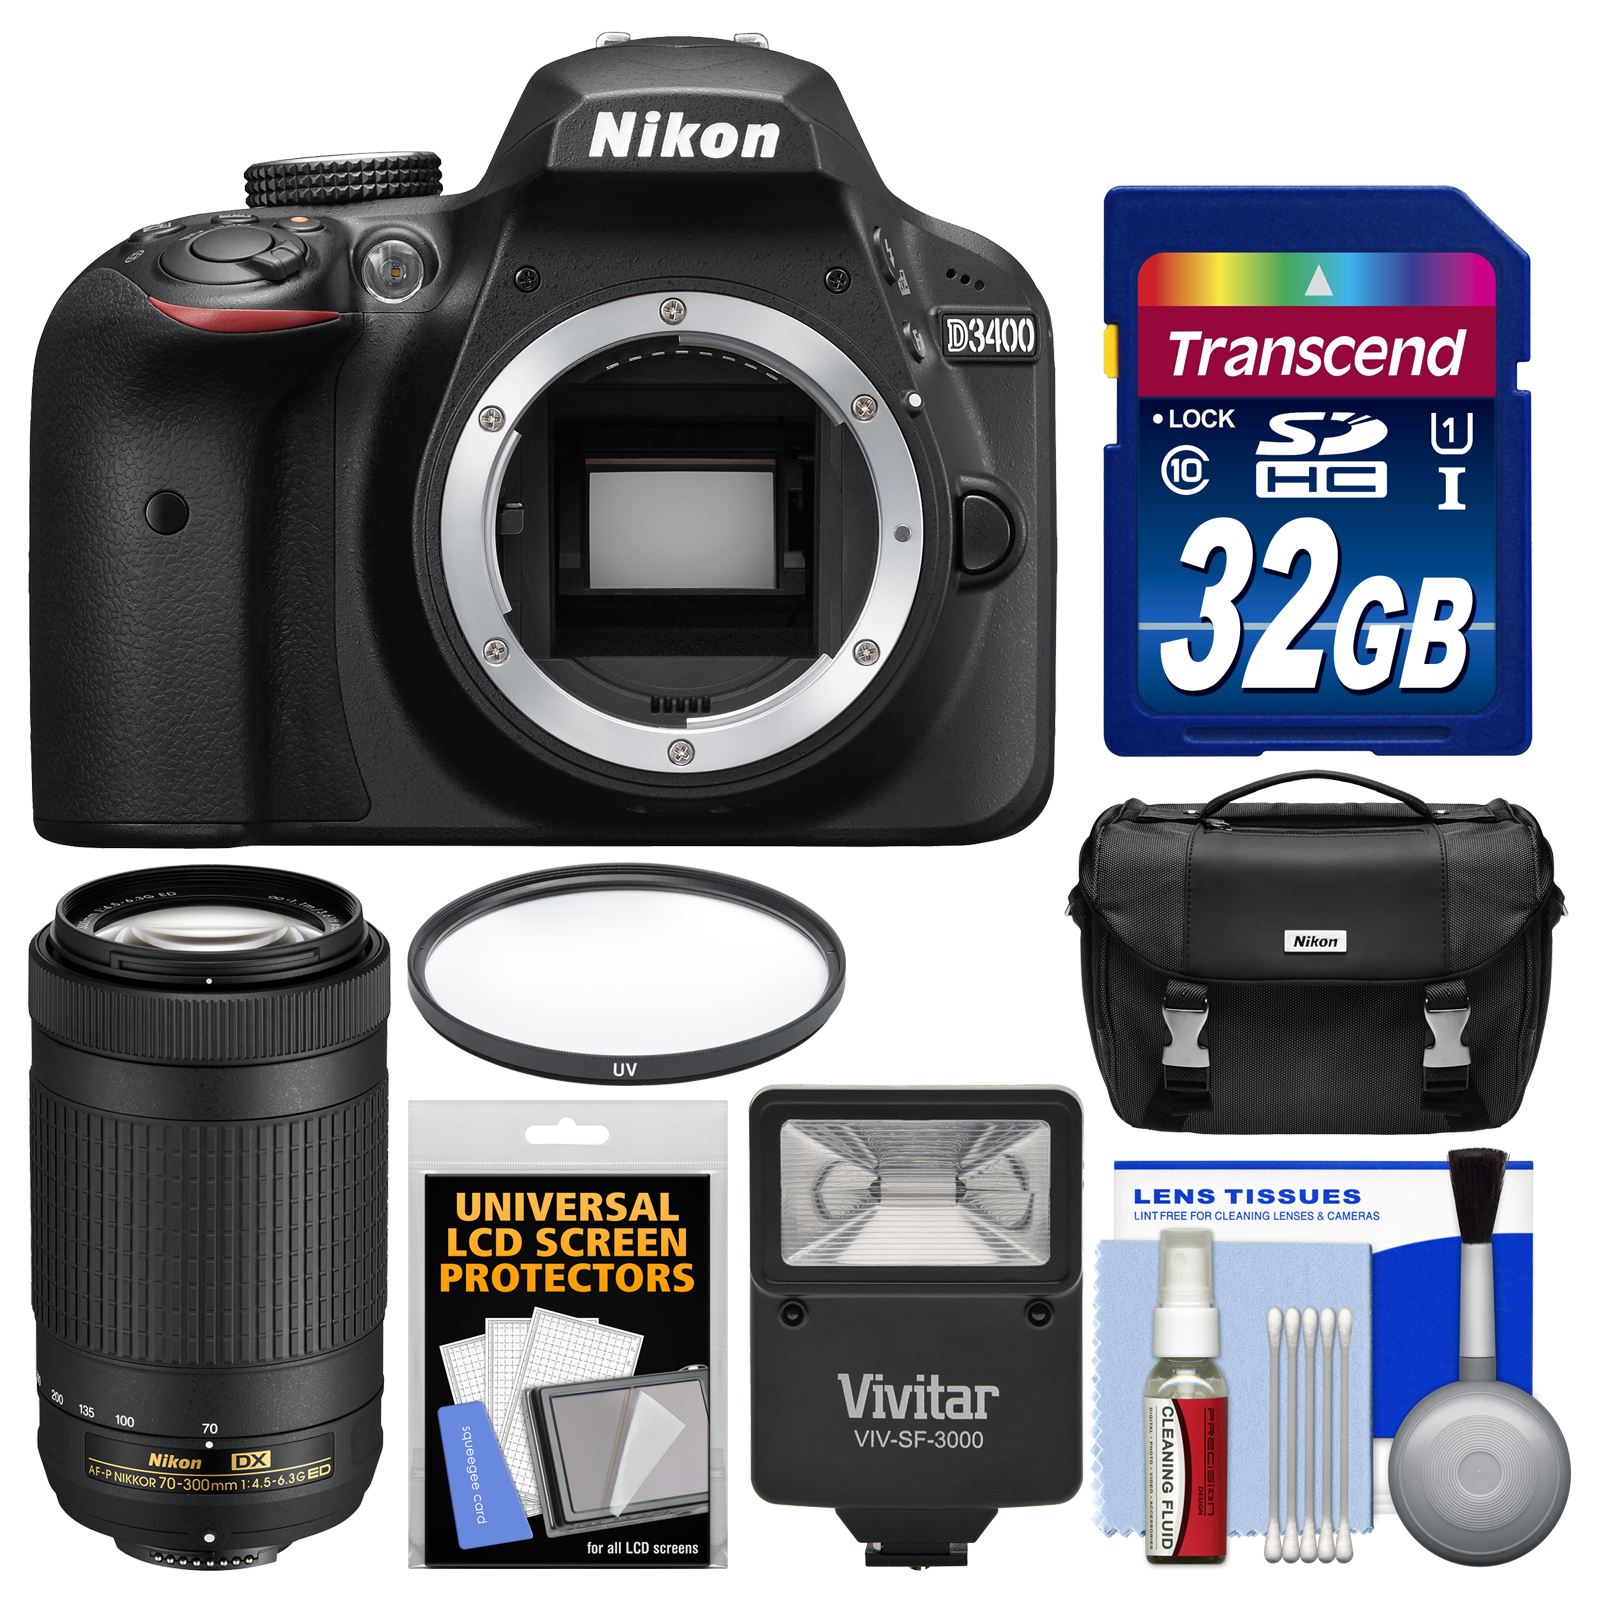 Nikon D3400 Digital SLR Camera Body (Black) - Refurbished with 70-300mm Lens + 32GB Card + Case + Flash + UV Filter + Kit